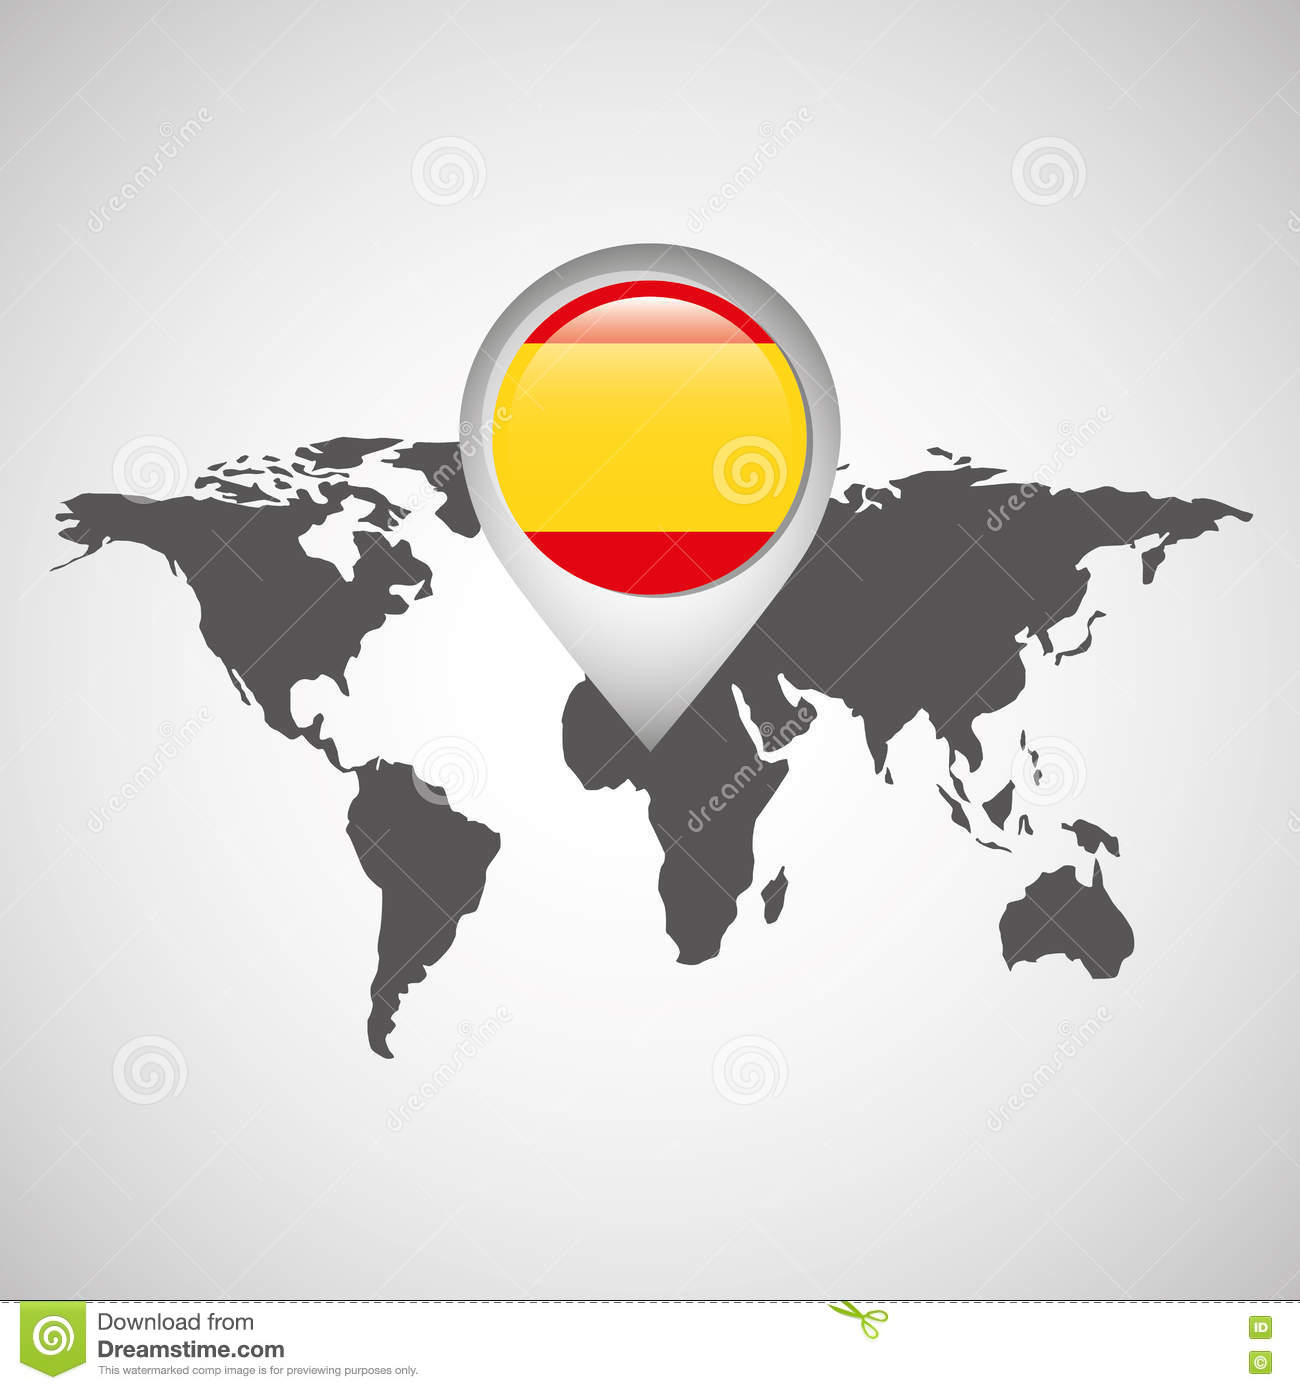 World map with pointer flag spain stock vector illustration of world map with pointer flag spain royalty free vector gumiabroncs Image collections